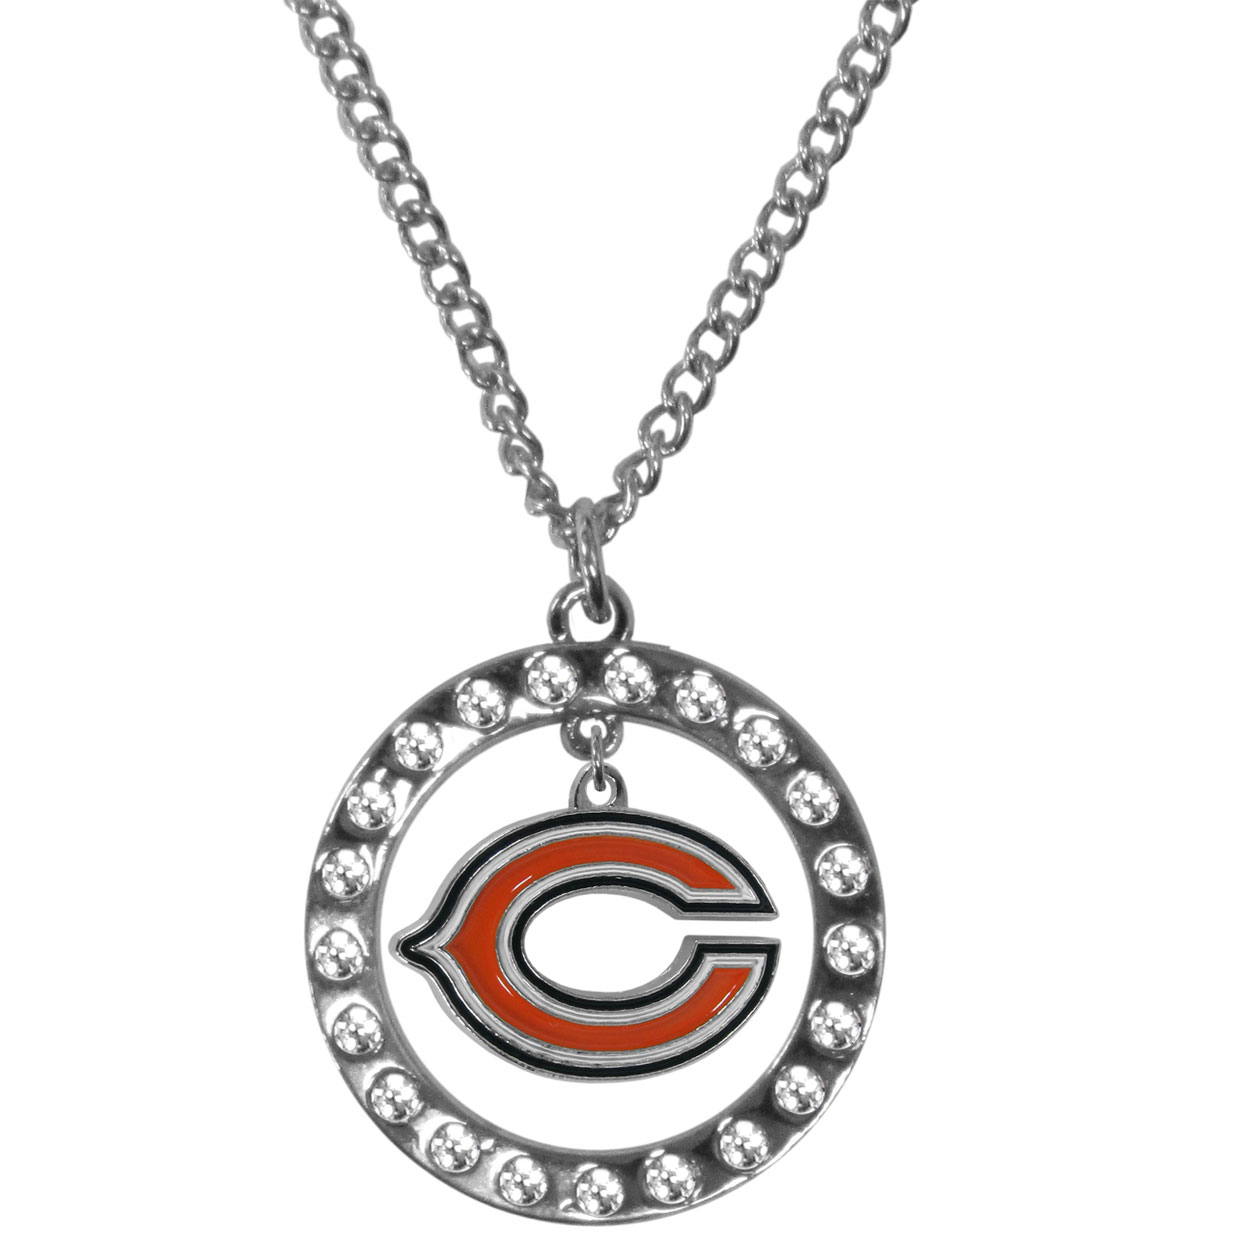 Chicago Bears Rhinestone Hoop Necklaces - Our Chicago Bears rhinestone hoop necklace comes on an 18 inch chain and features a hoop covered in rhinestones with a high polish chrome finish and a cast and enameled team charm dangling in the center.